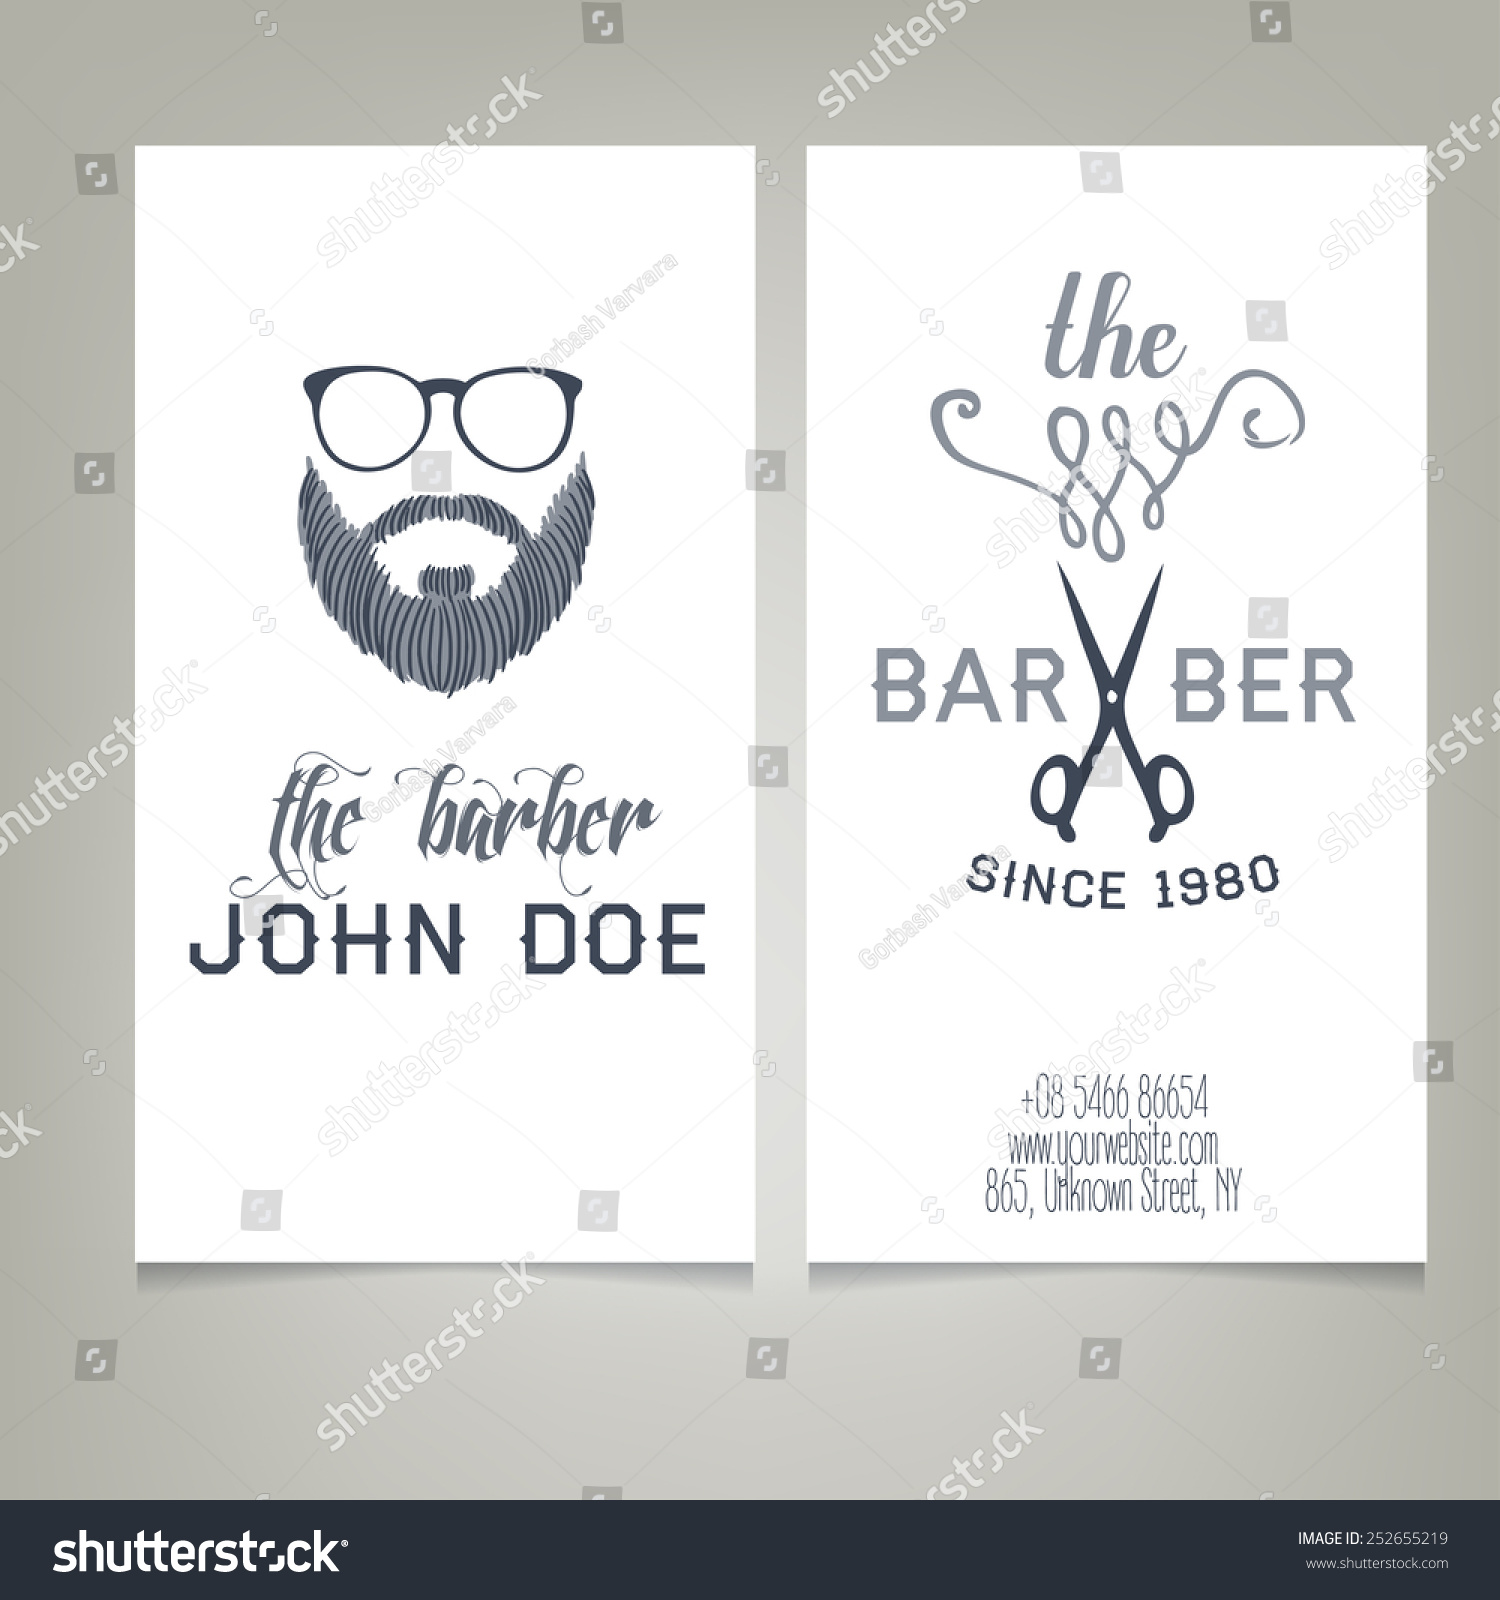 Hipster Barber Shop Business Card Design Stock Vector 252655219 ...